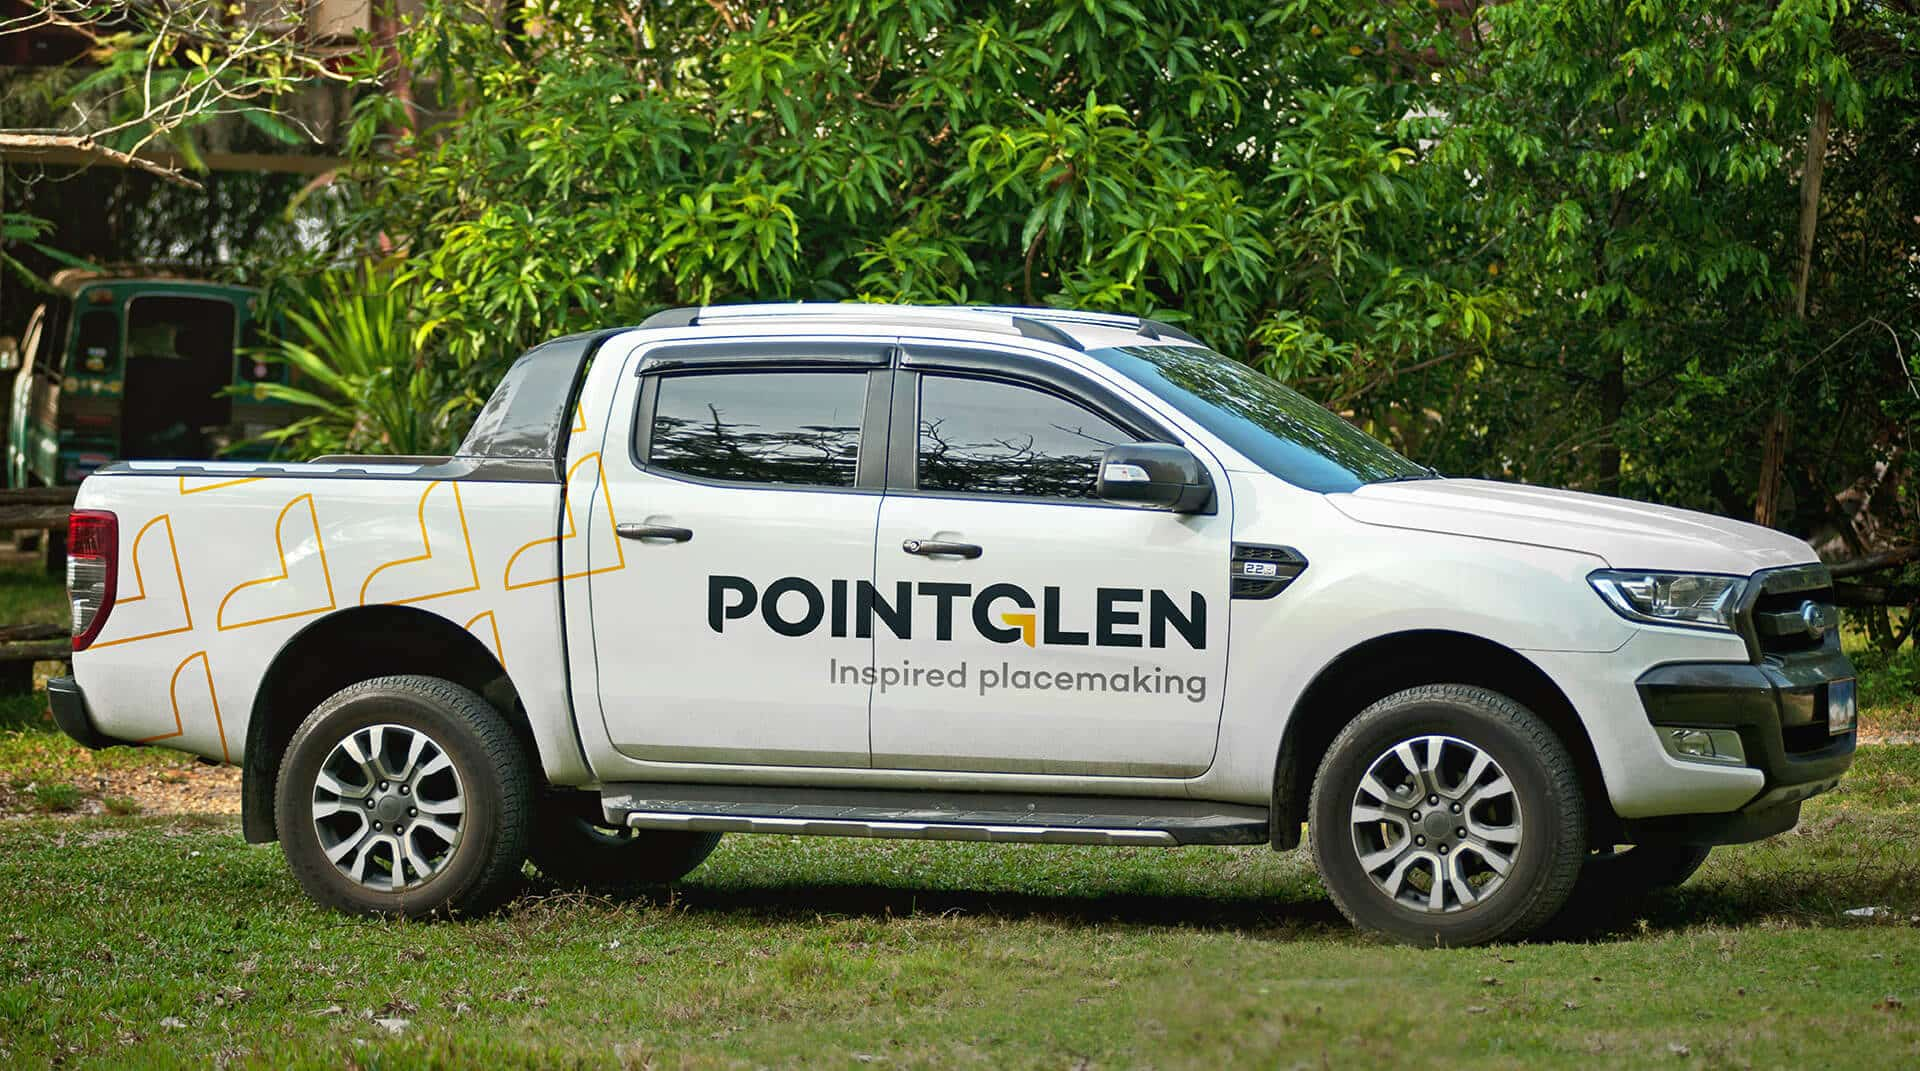 Pointglen Developments Property Branding